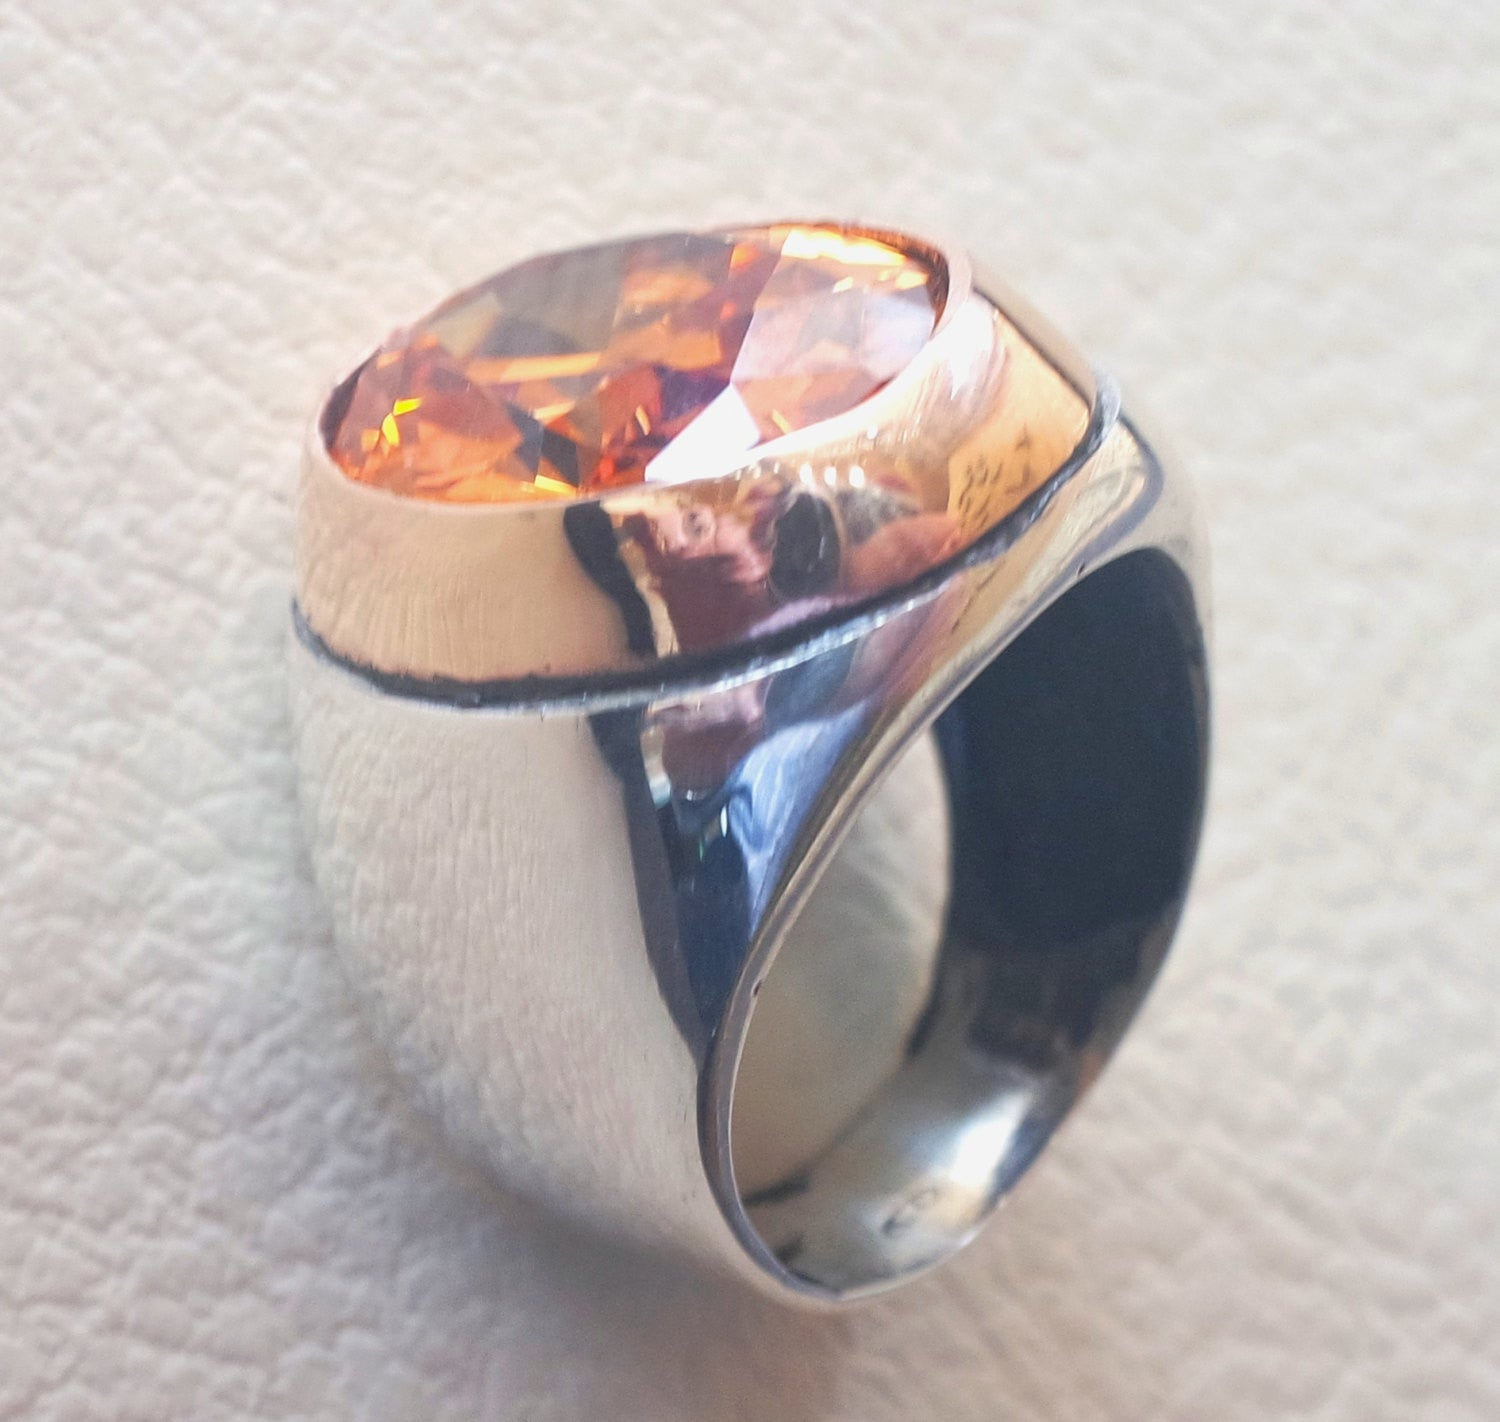 deep vivid fancy orange cubic zirconia oval huge stone highest quality stone sterling silver 925 men ring and bronze frame all sizes jewelry